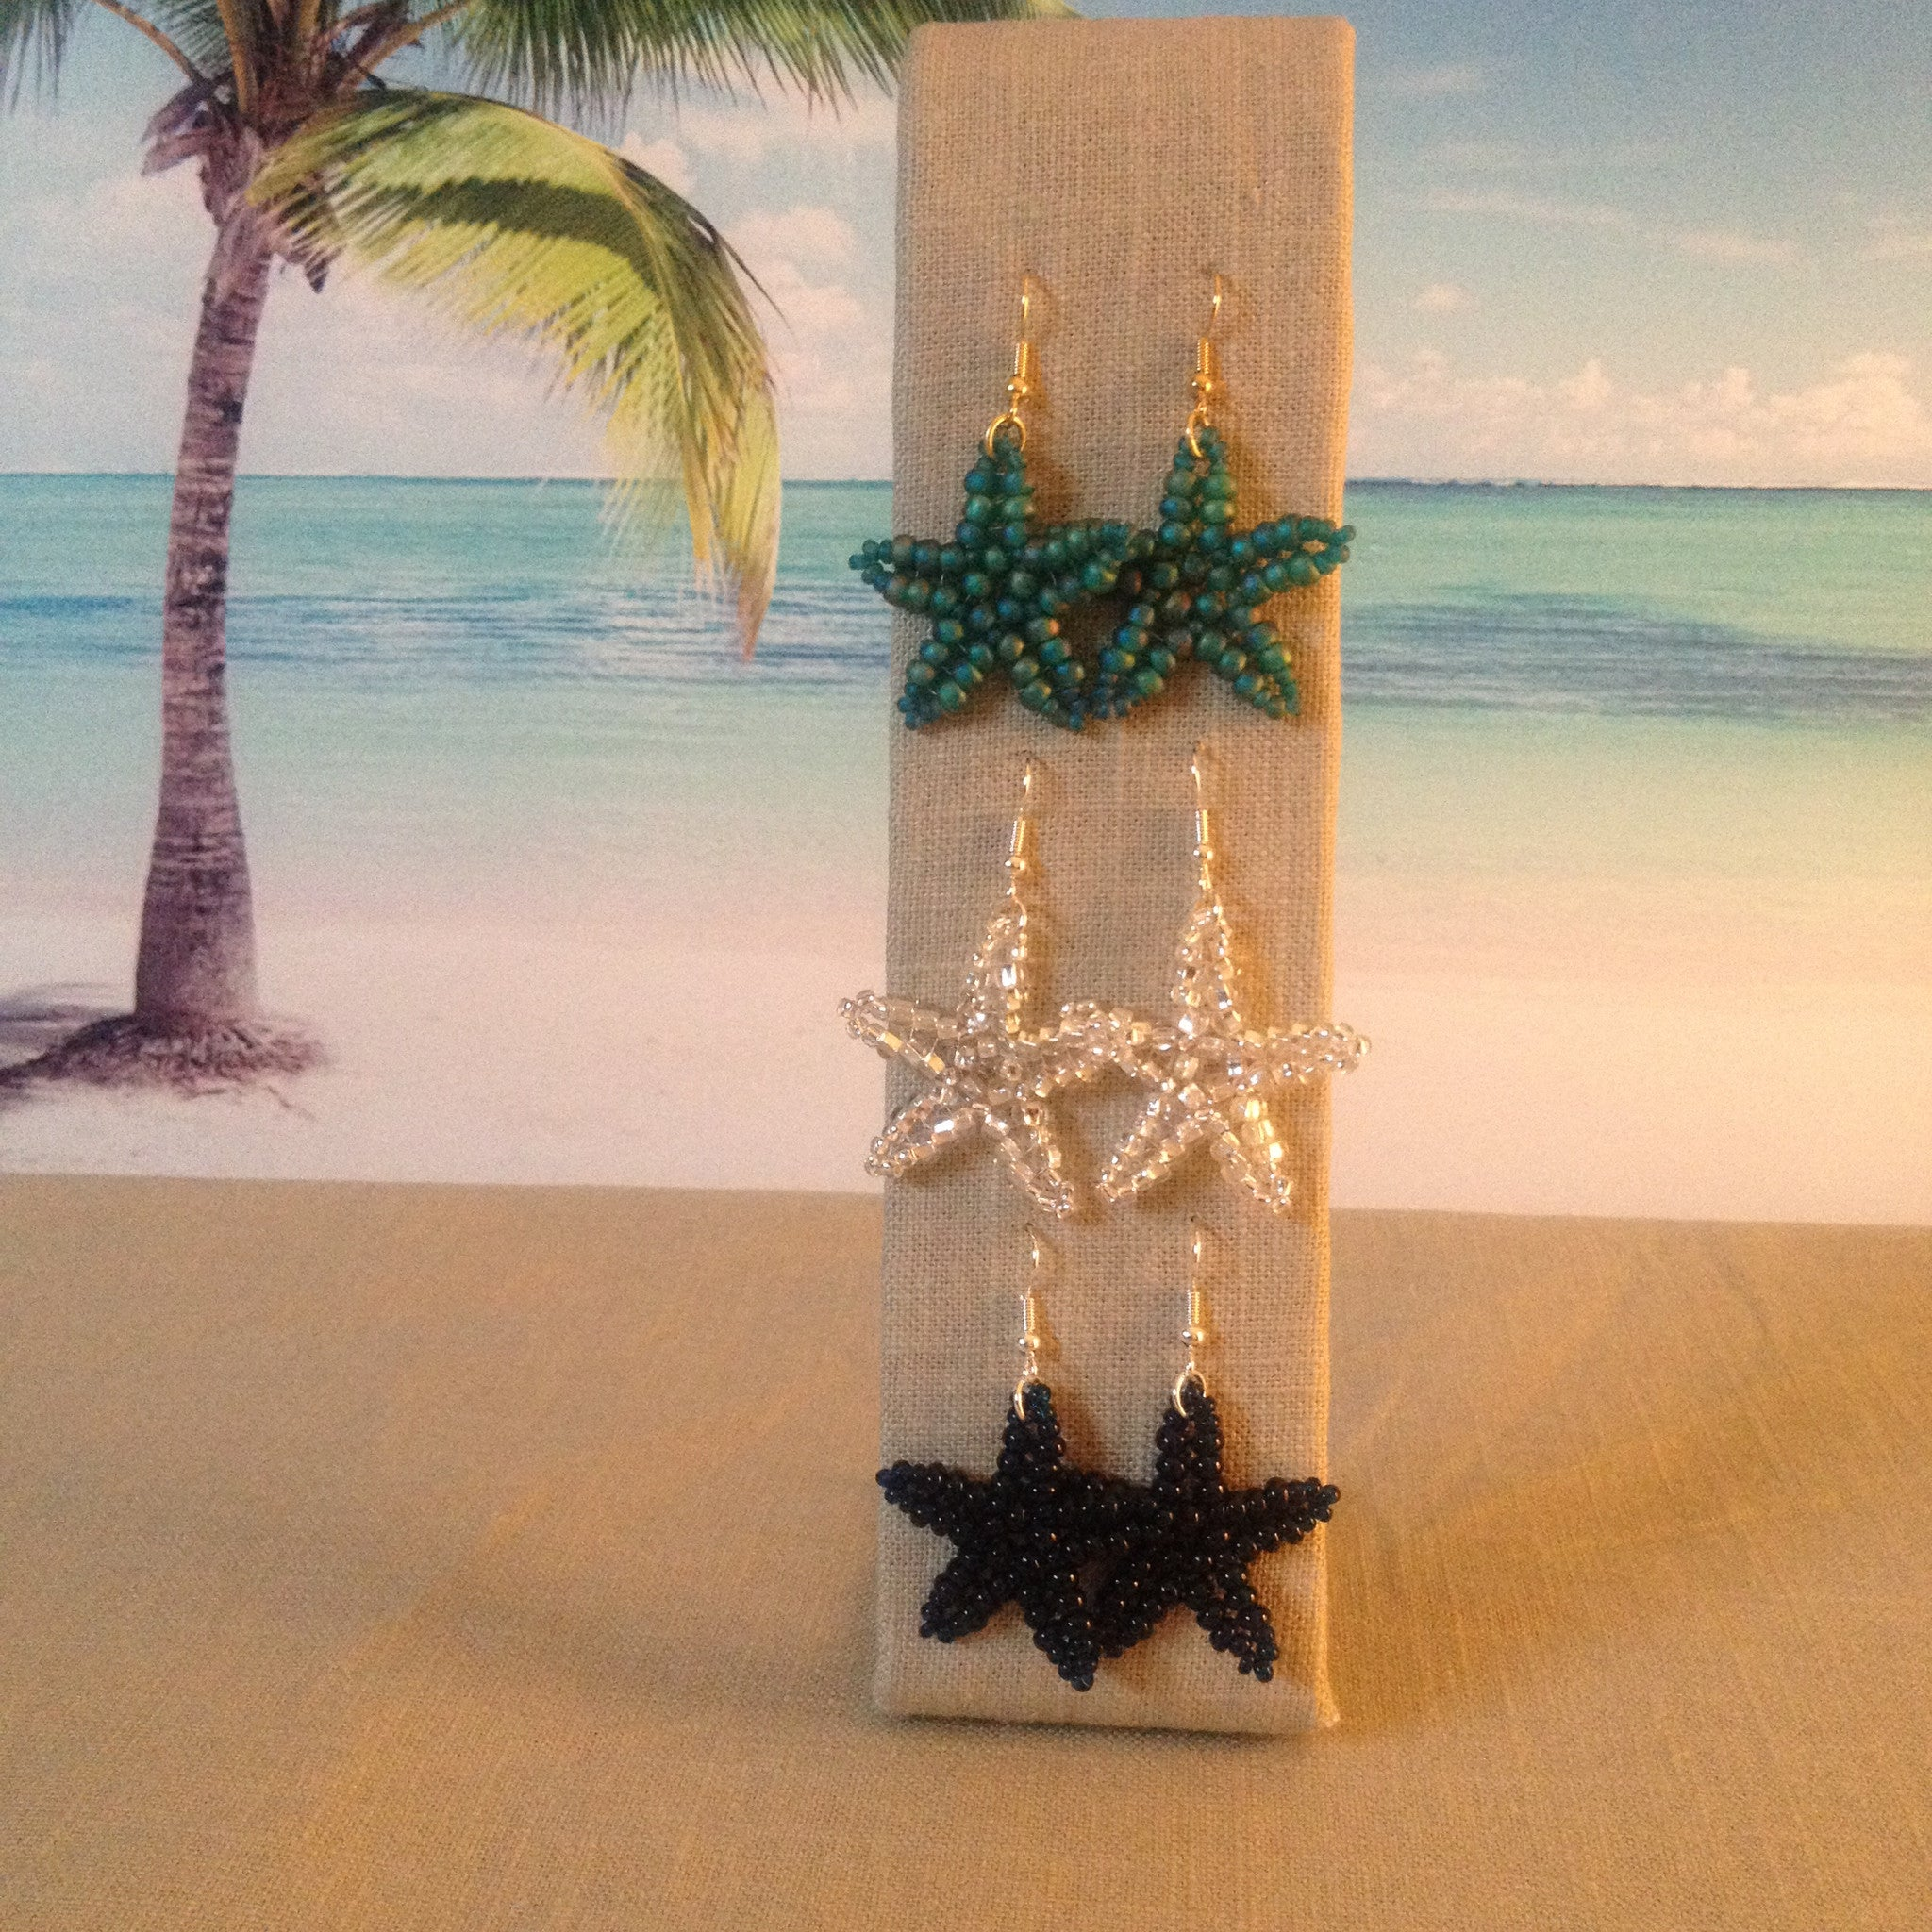 Starfish beaded handmade earrings in green crystal navy resort cruise wear fun beachy style